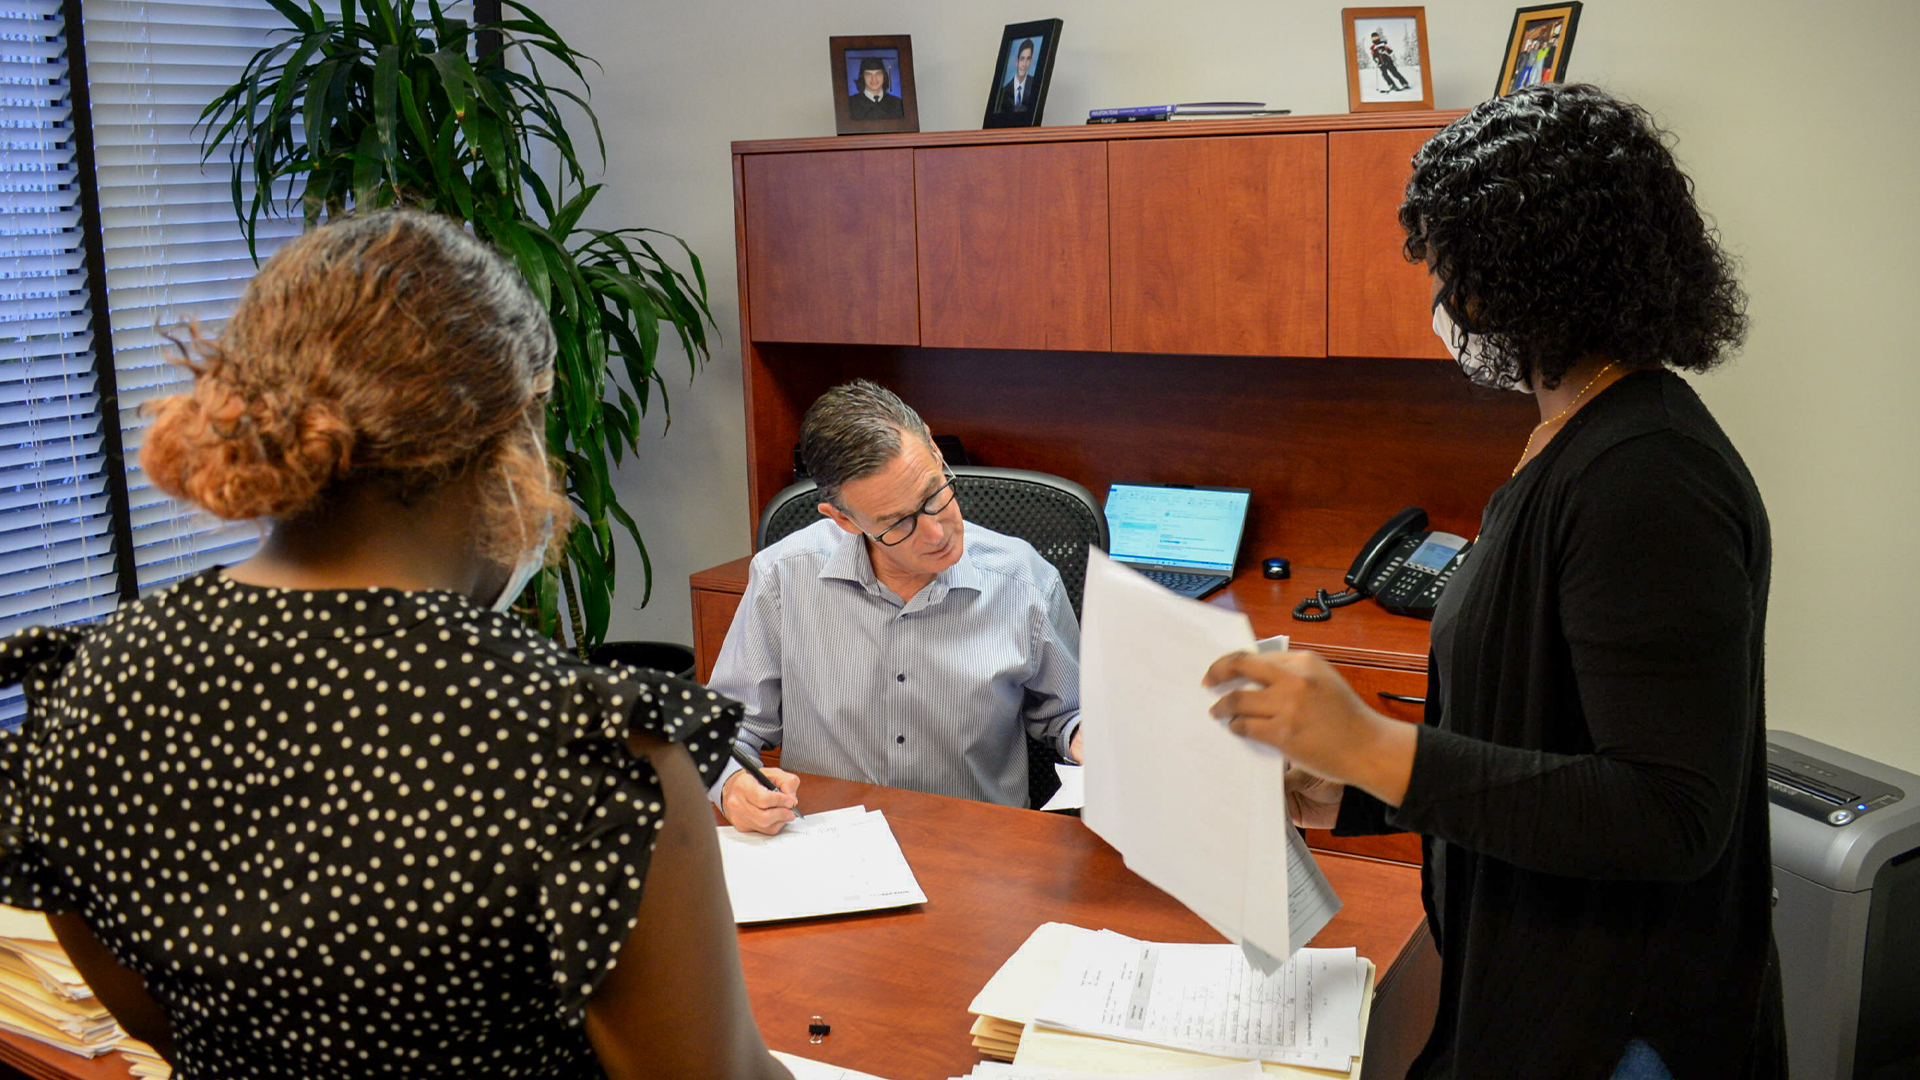 WDSrx President meets with two members of the Quality Assurance Team